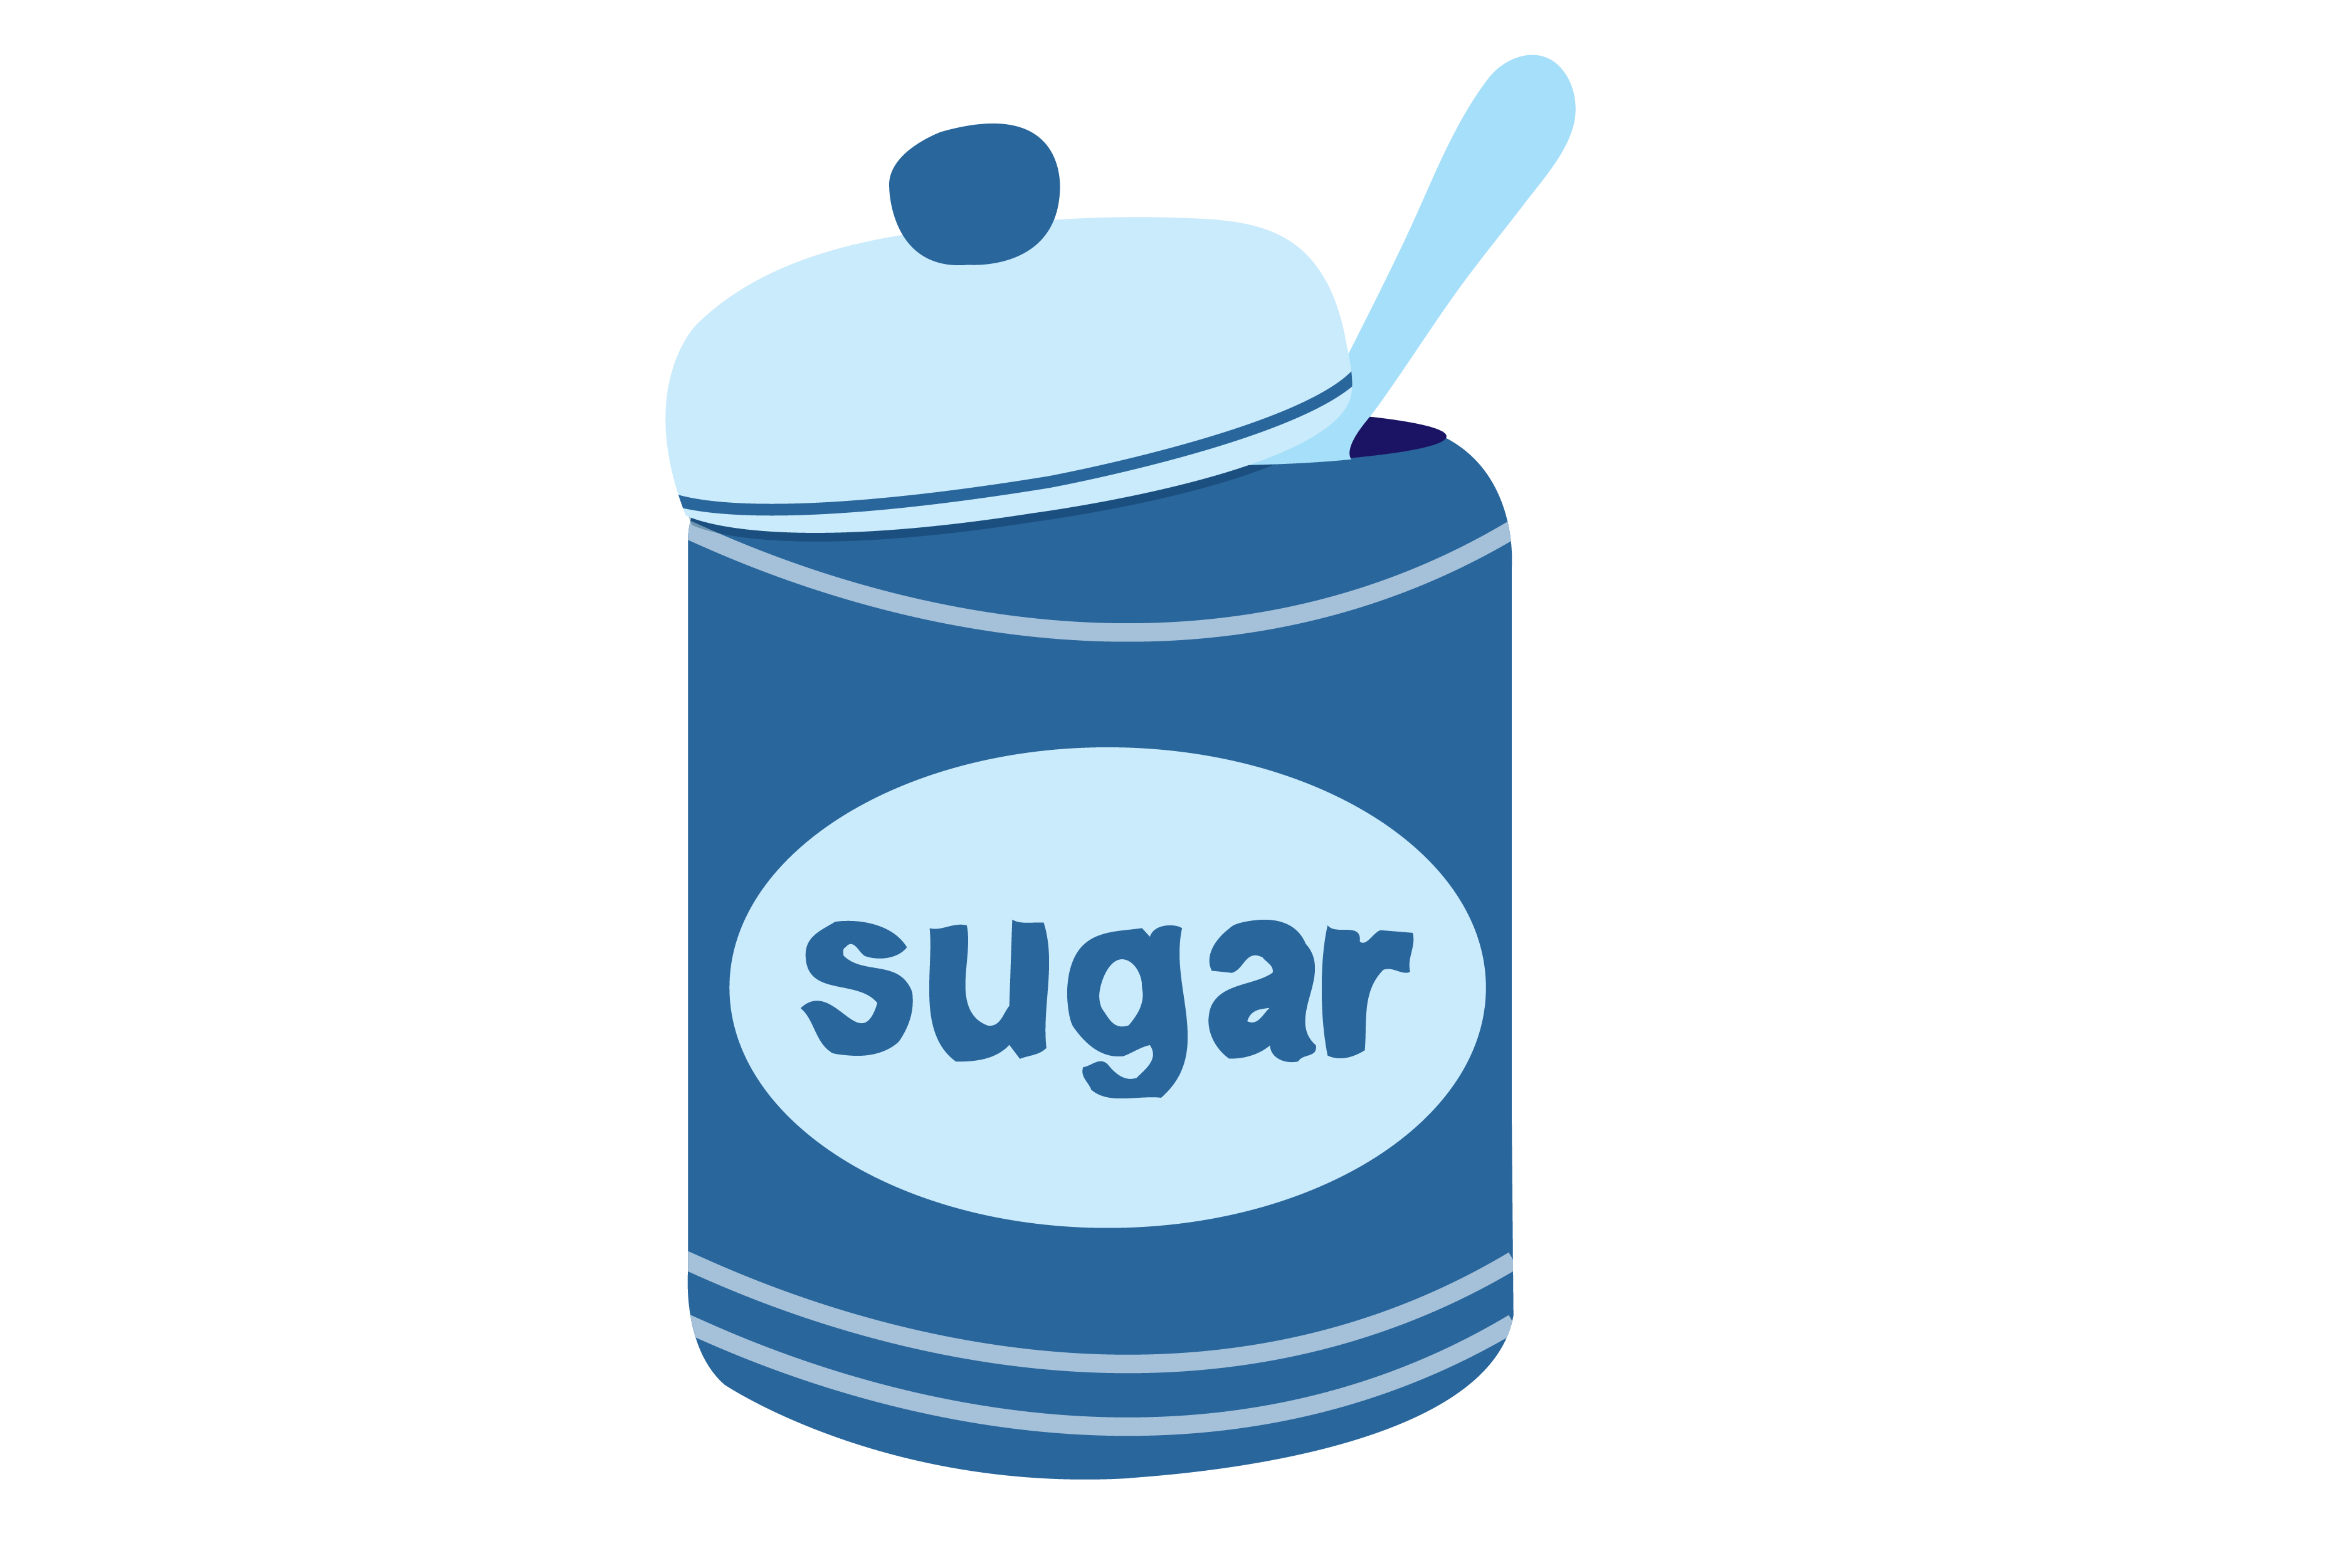 Making smart sugar choices for your family